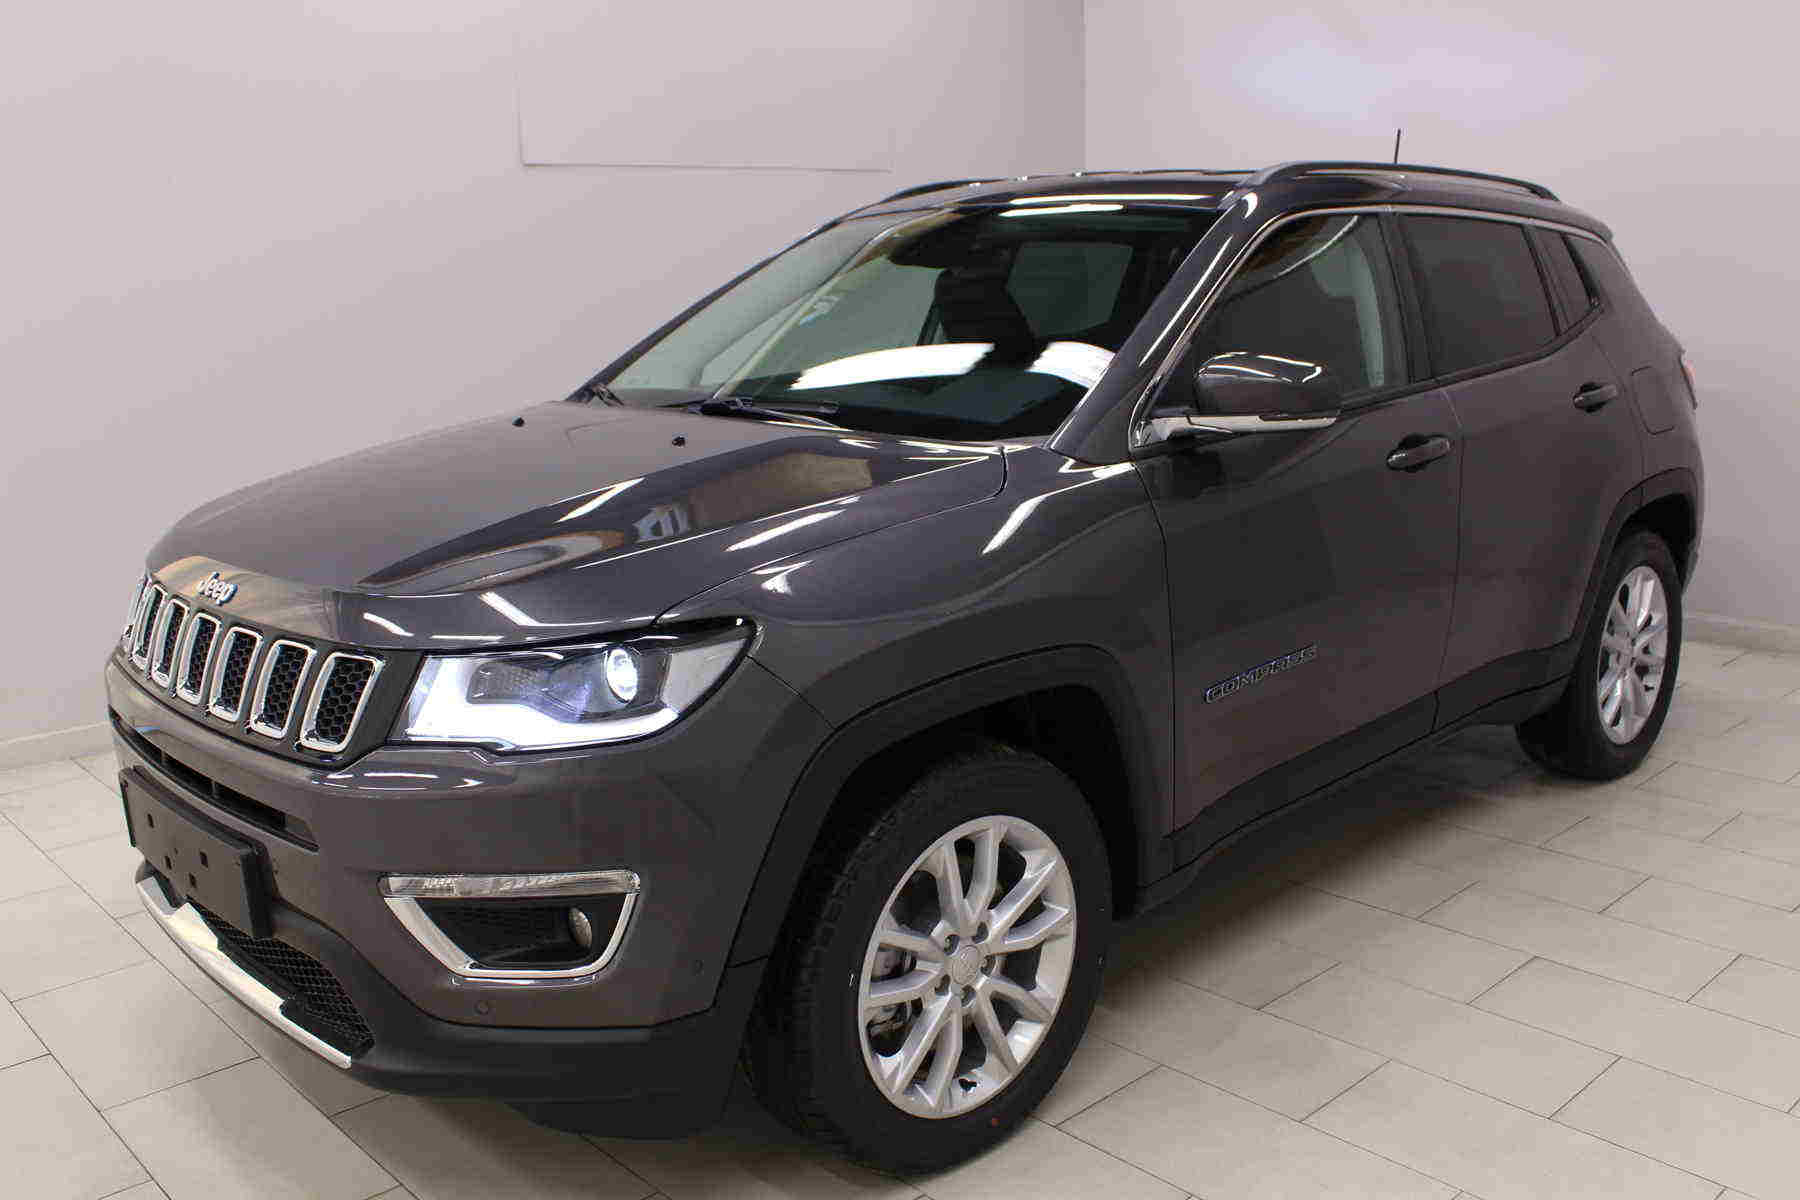 Acheter JEEP Compass 1.3 GSE T4 190 ch PHEV AT6 4xe eAWD Limited Granite Crystal + Pack hiver + Pack Cuir avec options chez un mandataire auto